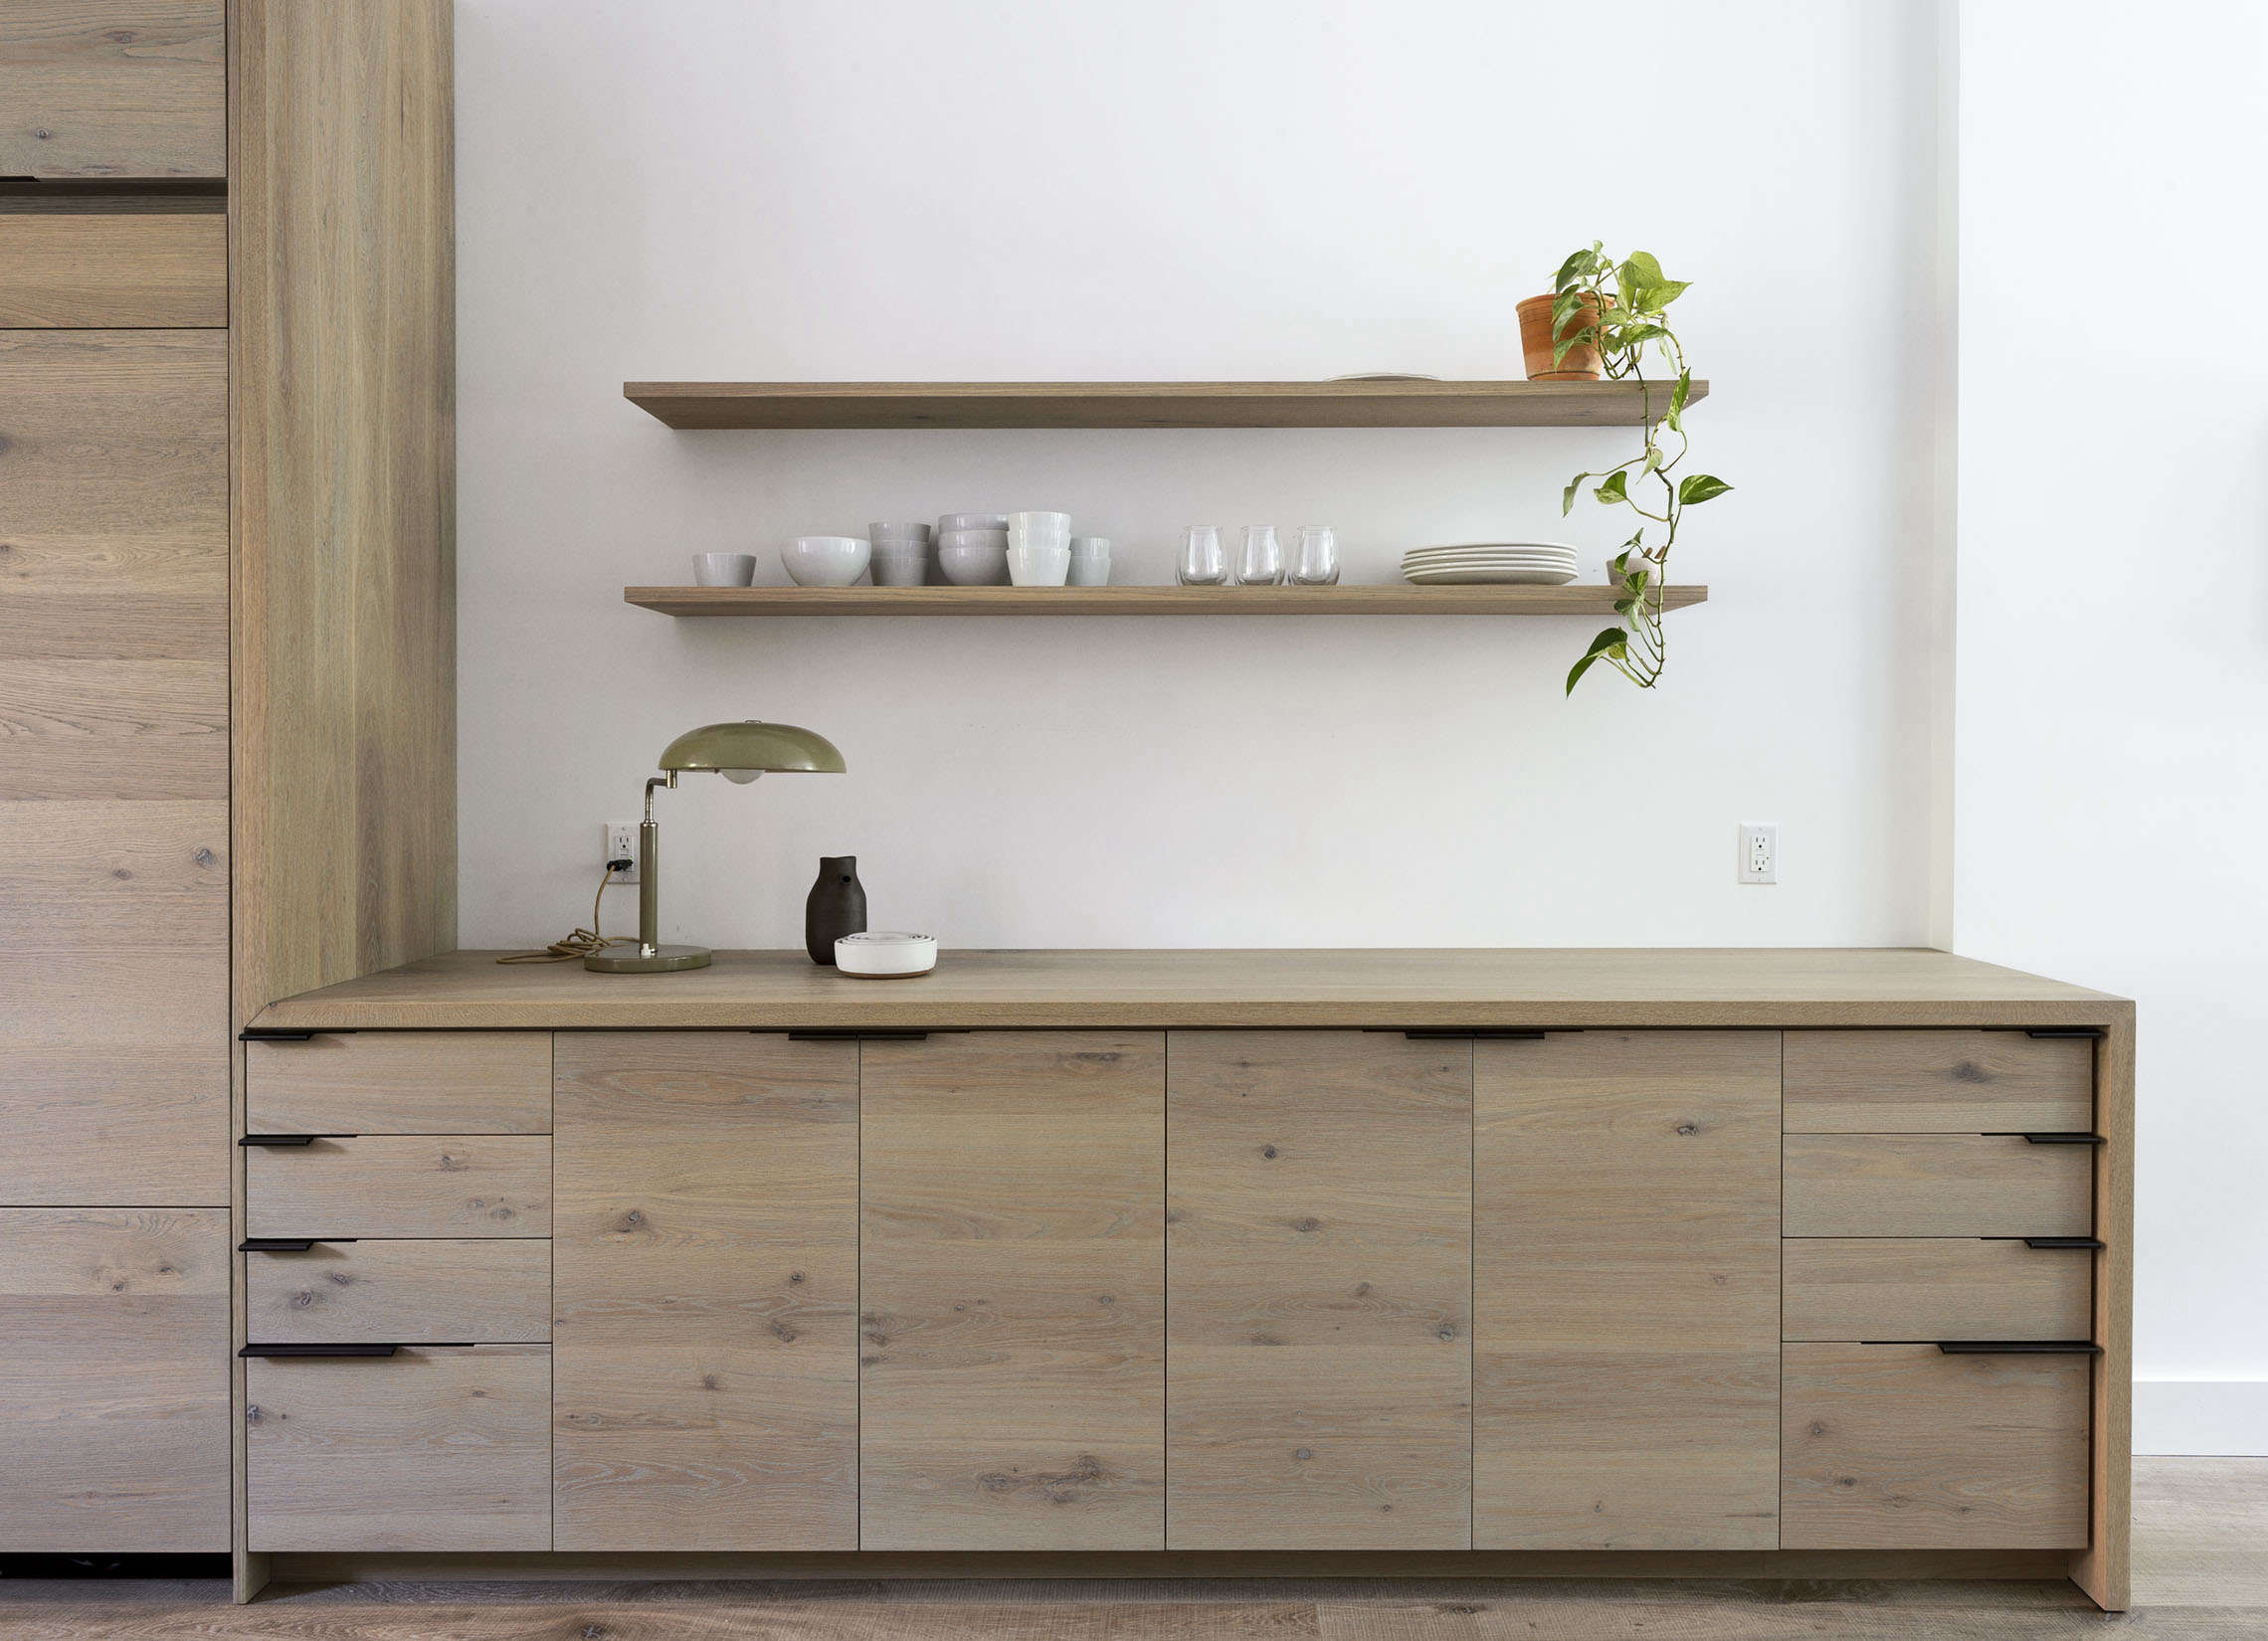 brooklyn dining area with custom oak cabinets, design by workstead, matthew wil 12